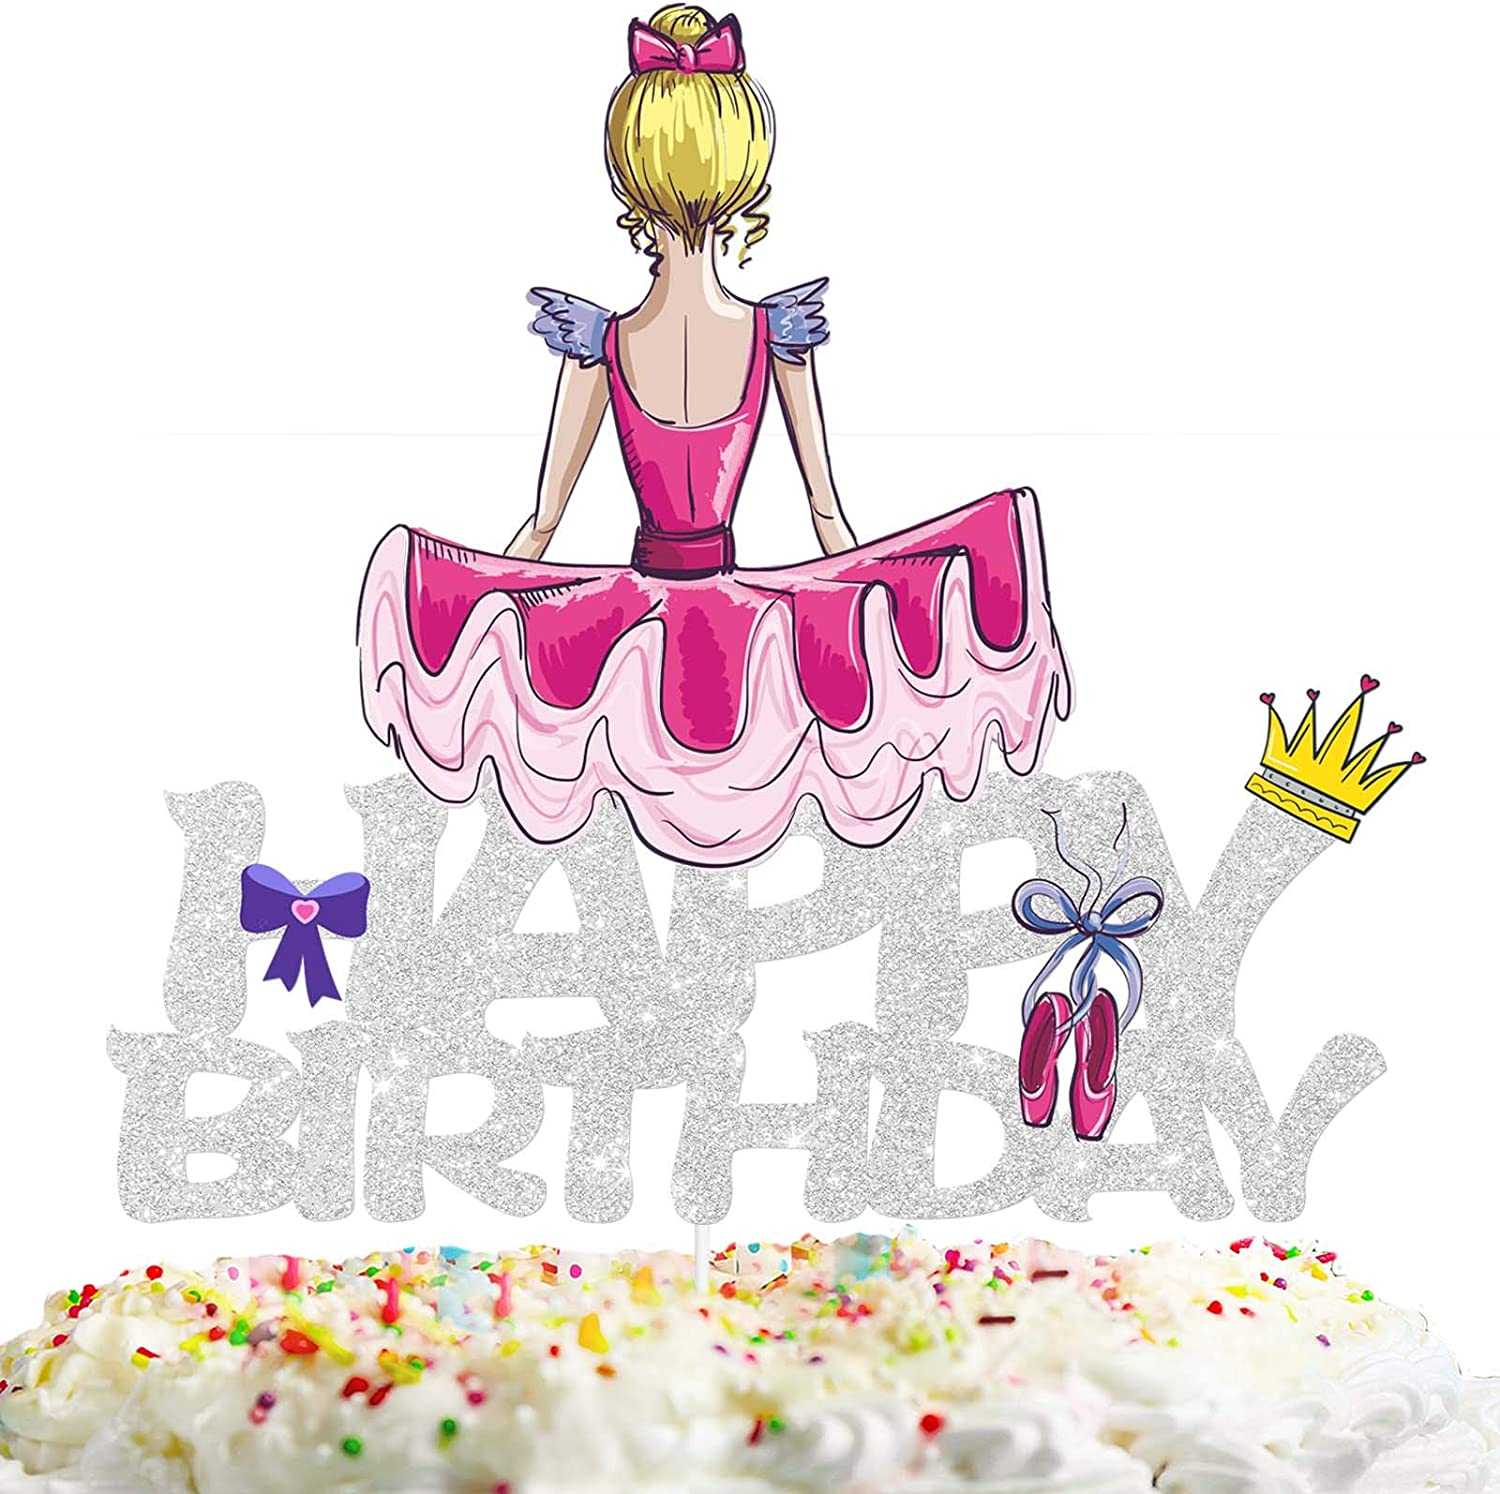 Ballerina Happy Birthday Cake Topper Decorations with Ballet Shoes for Dance Theme Picks for Kids Party Decor Supplies